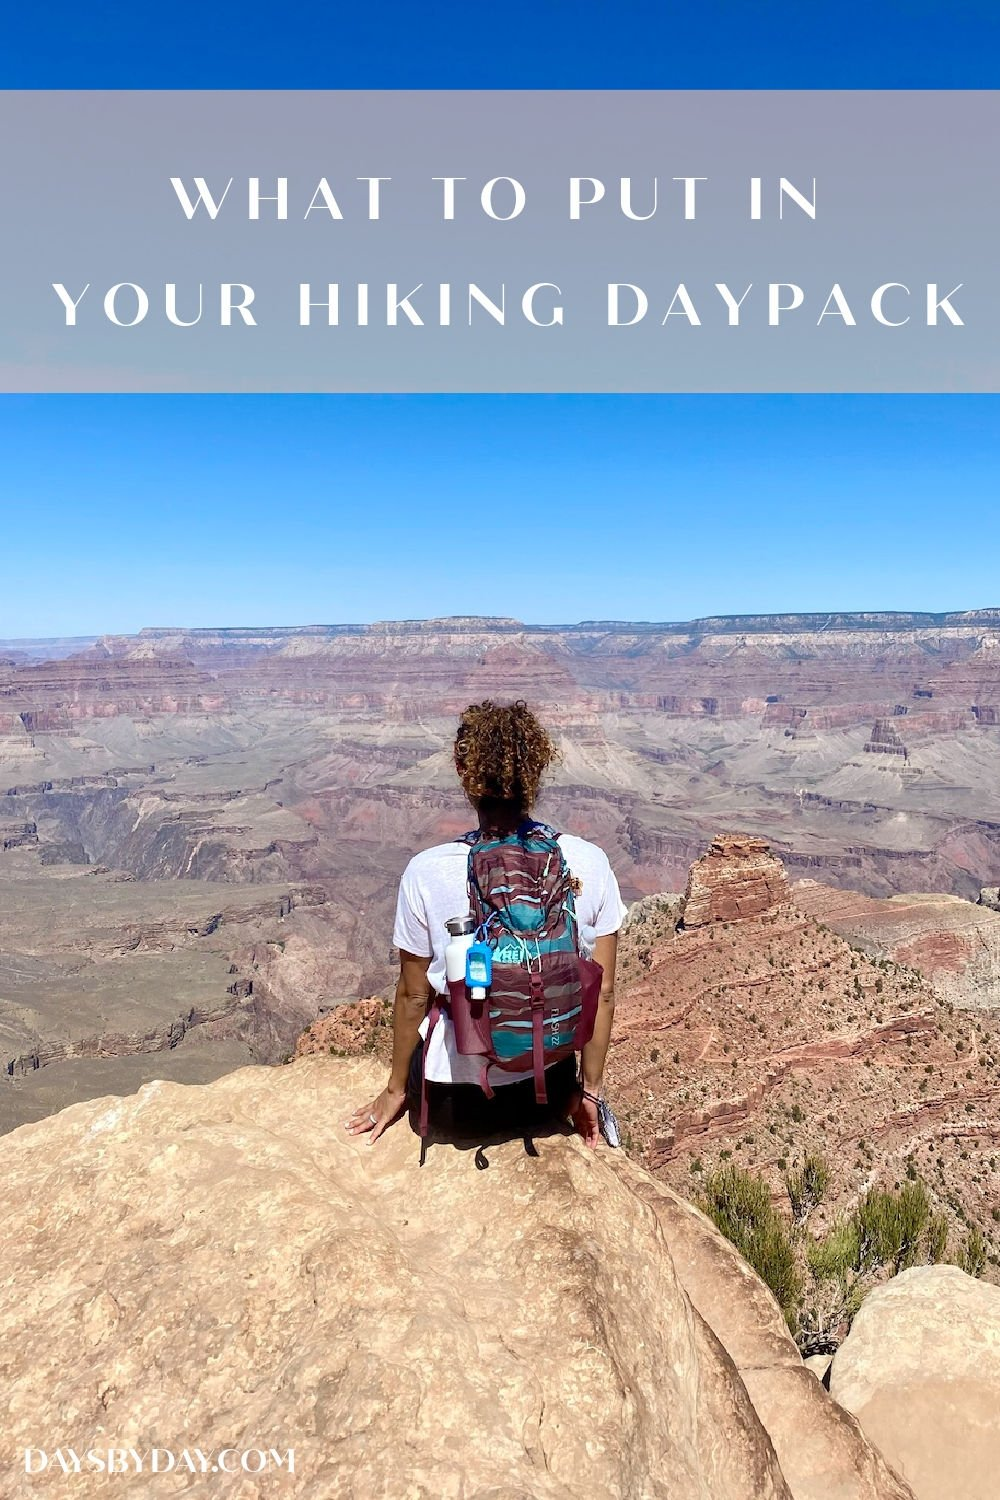 What to Put in Your Hiking Daypack